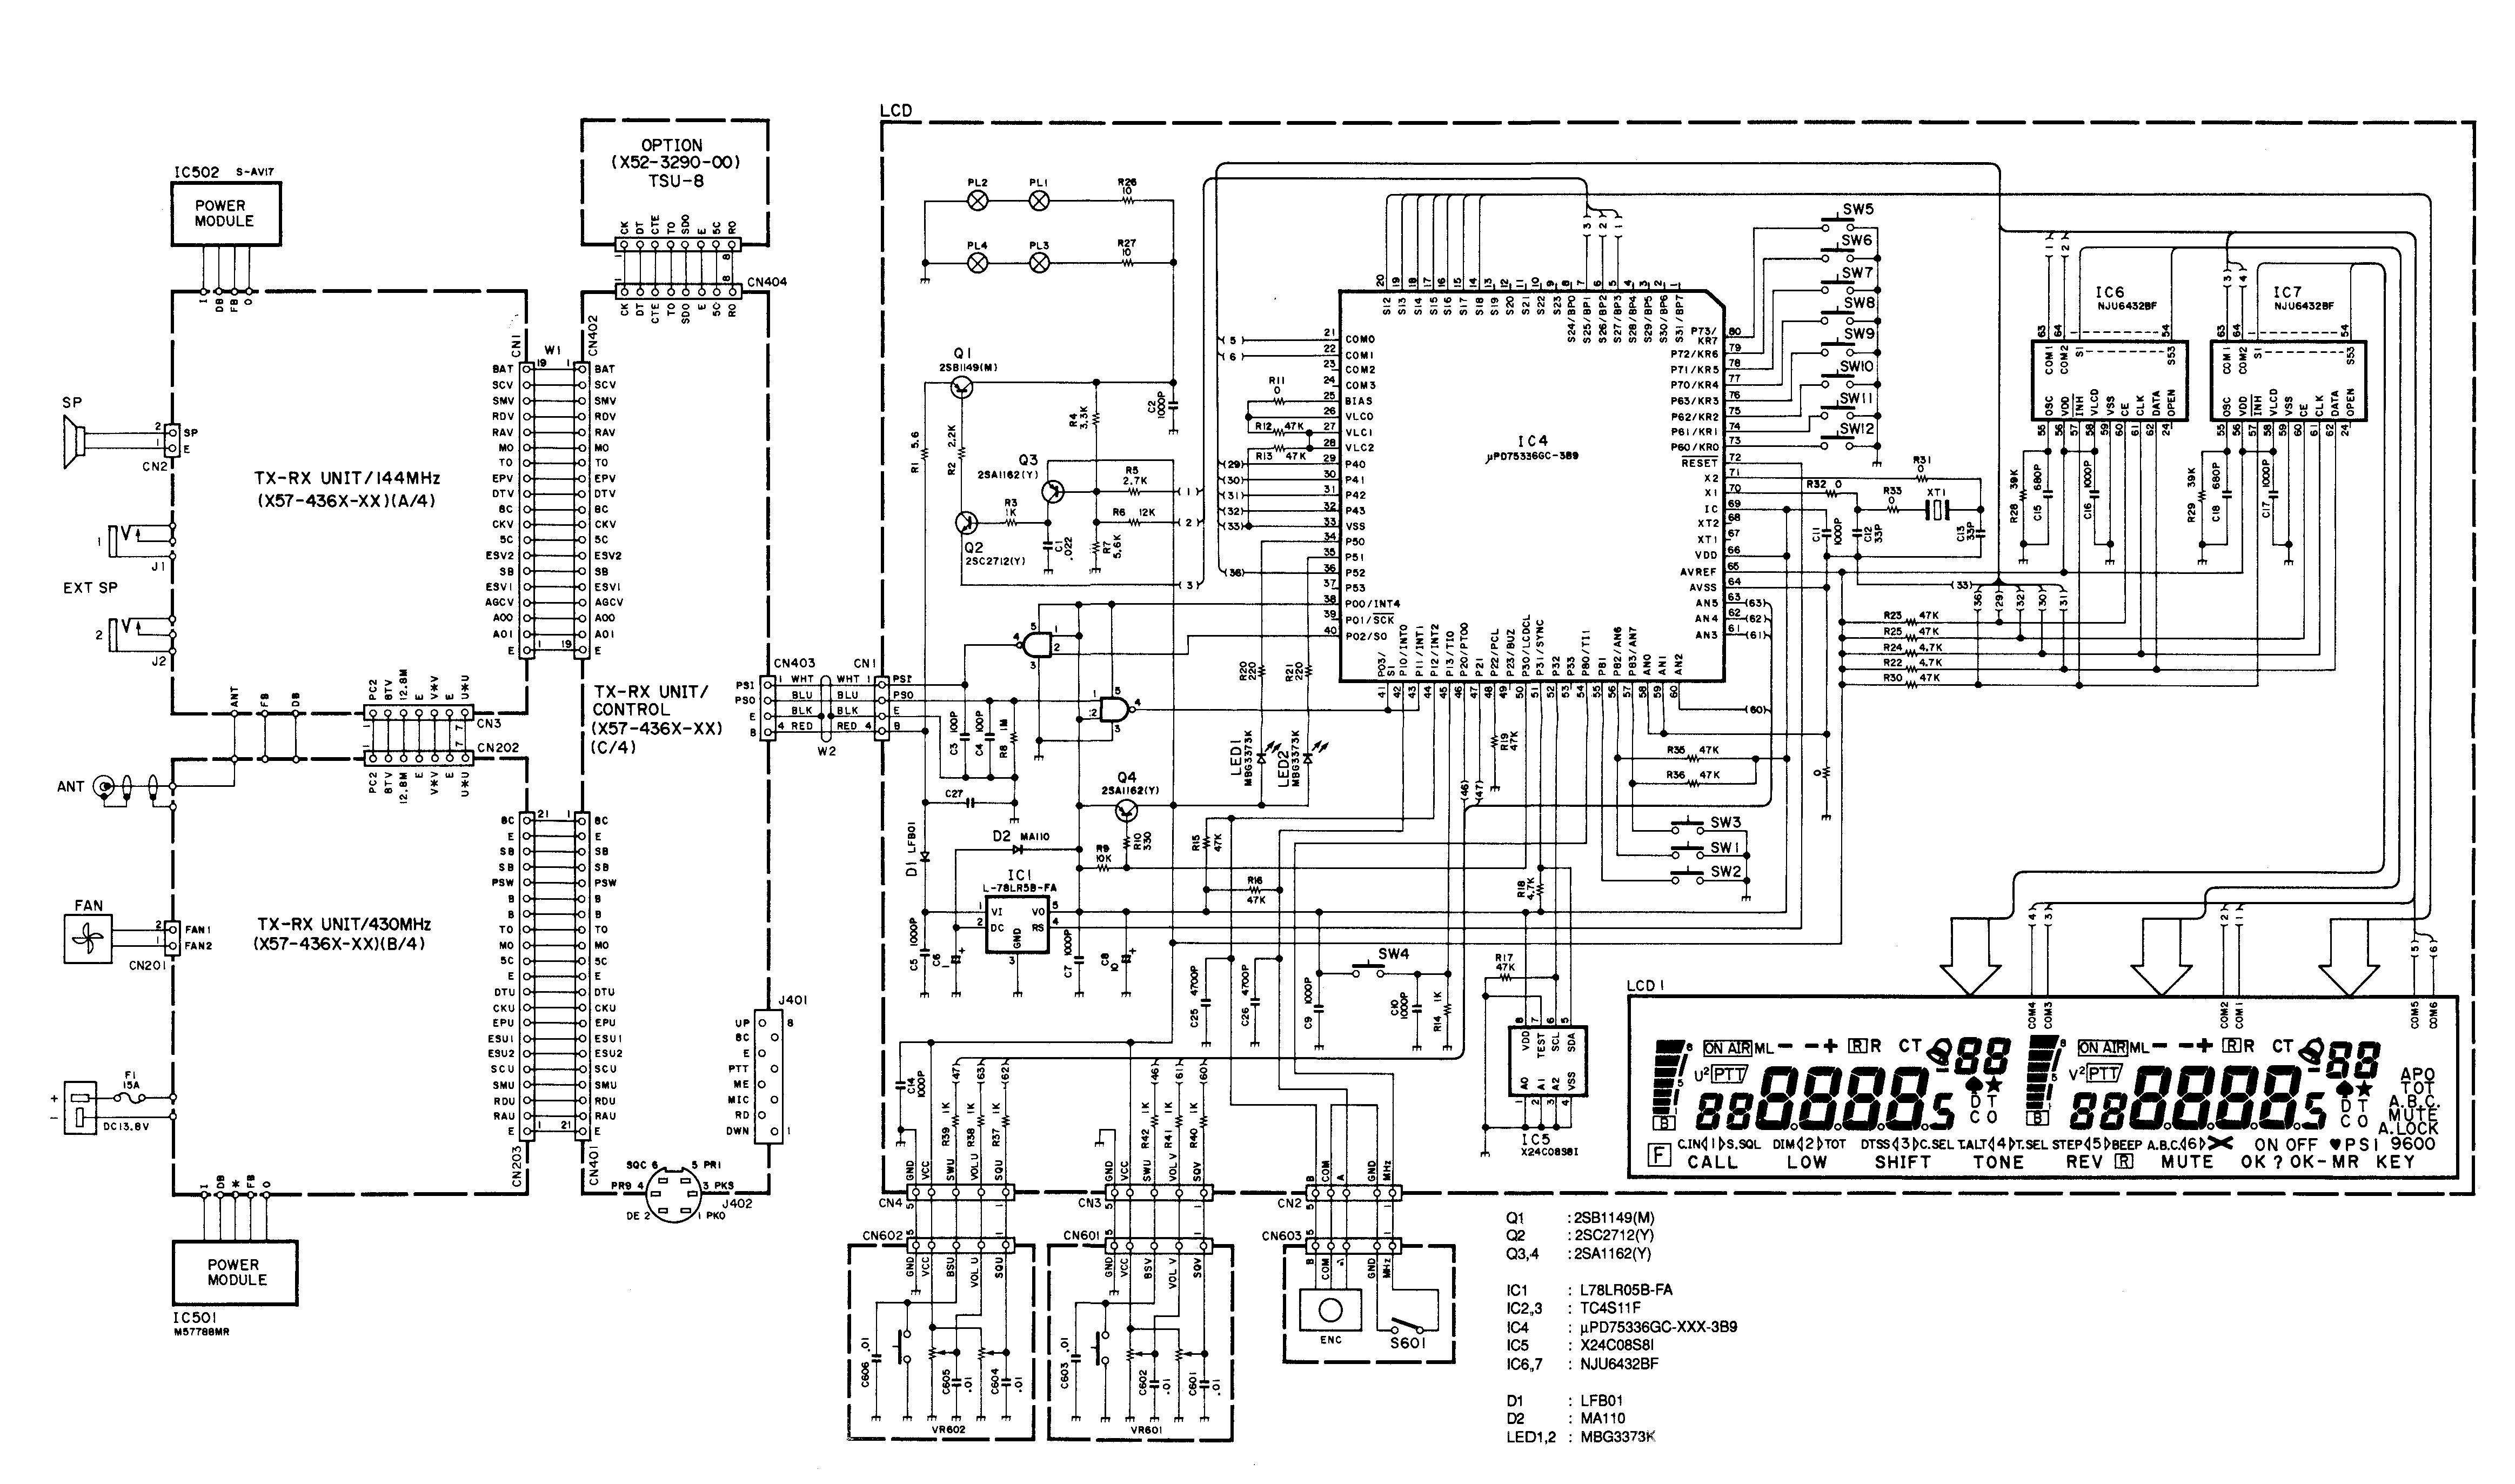 kenwood excelon dnx8120 wiring diagram 1963 chevy truck turn signal index of 4 4x6on radio manuals